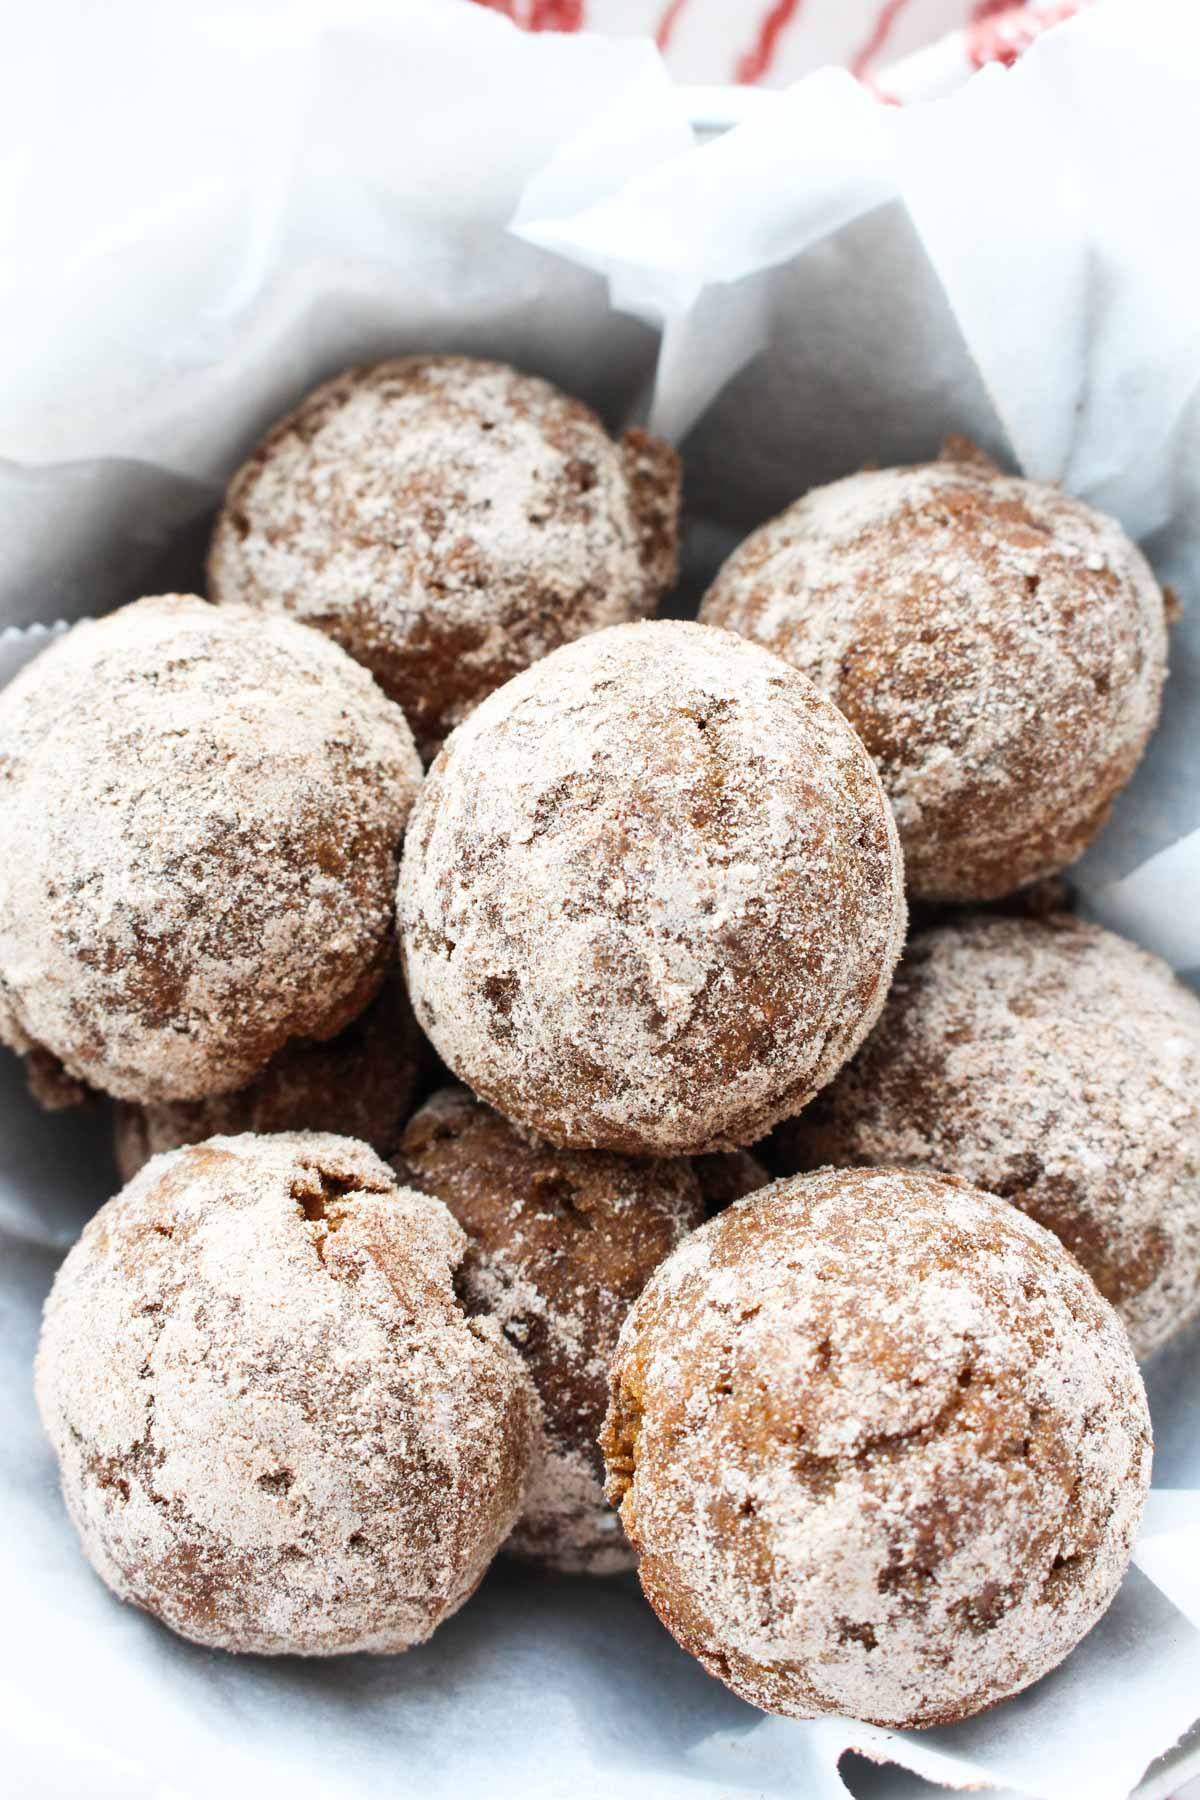 Donut holes in a parchment paper lined bowl.